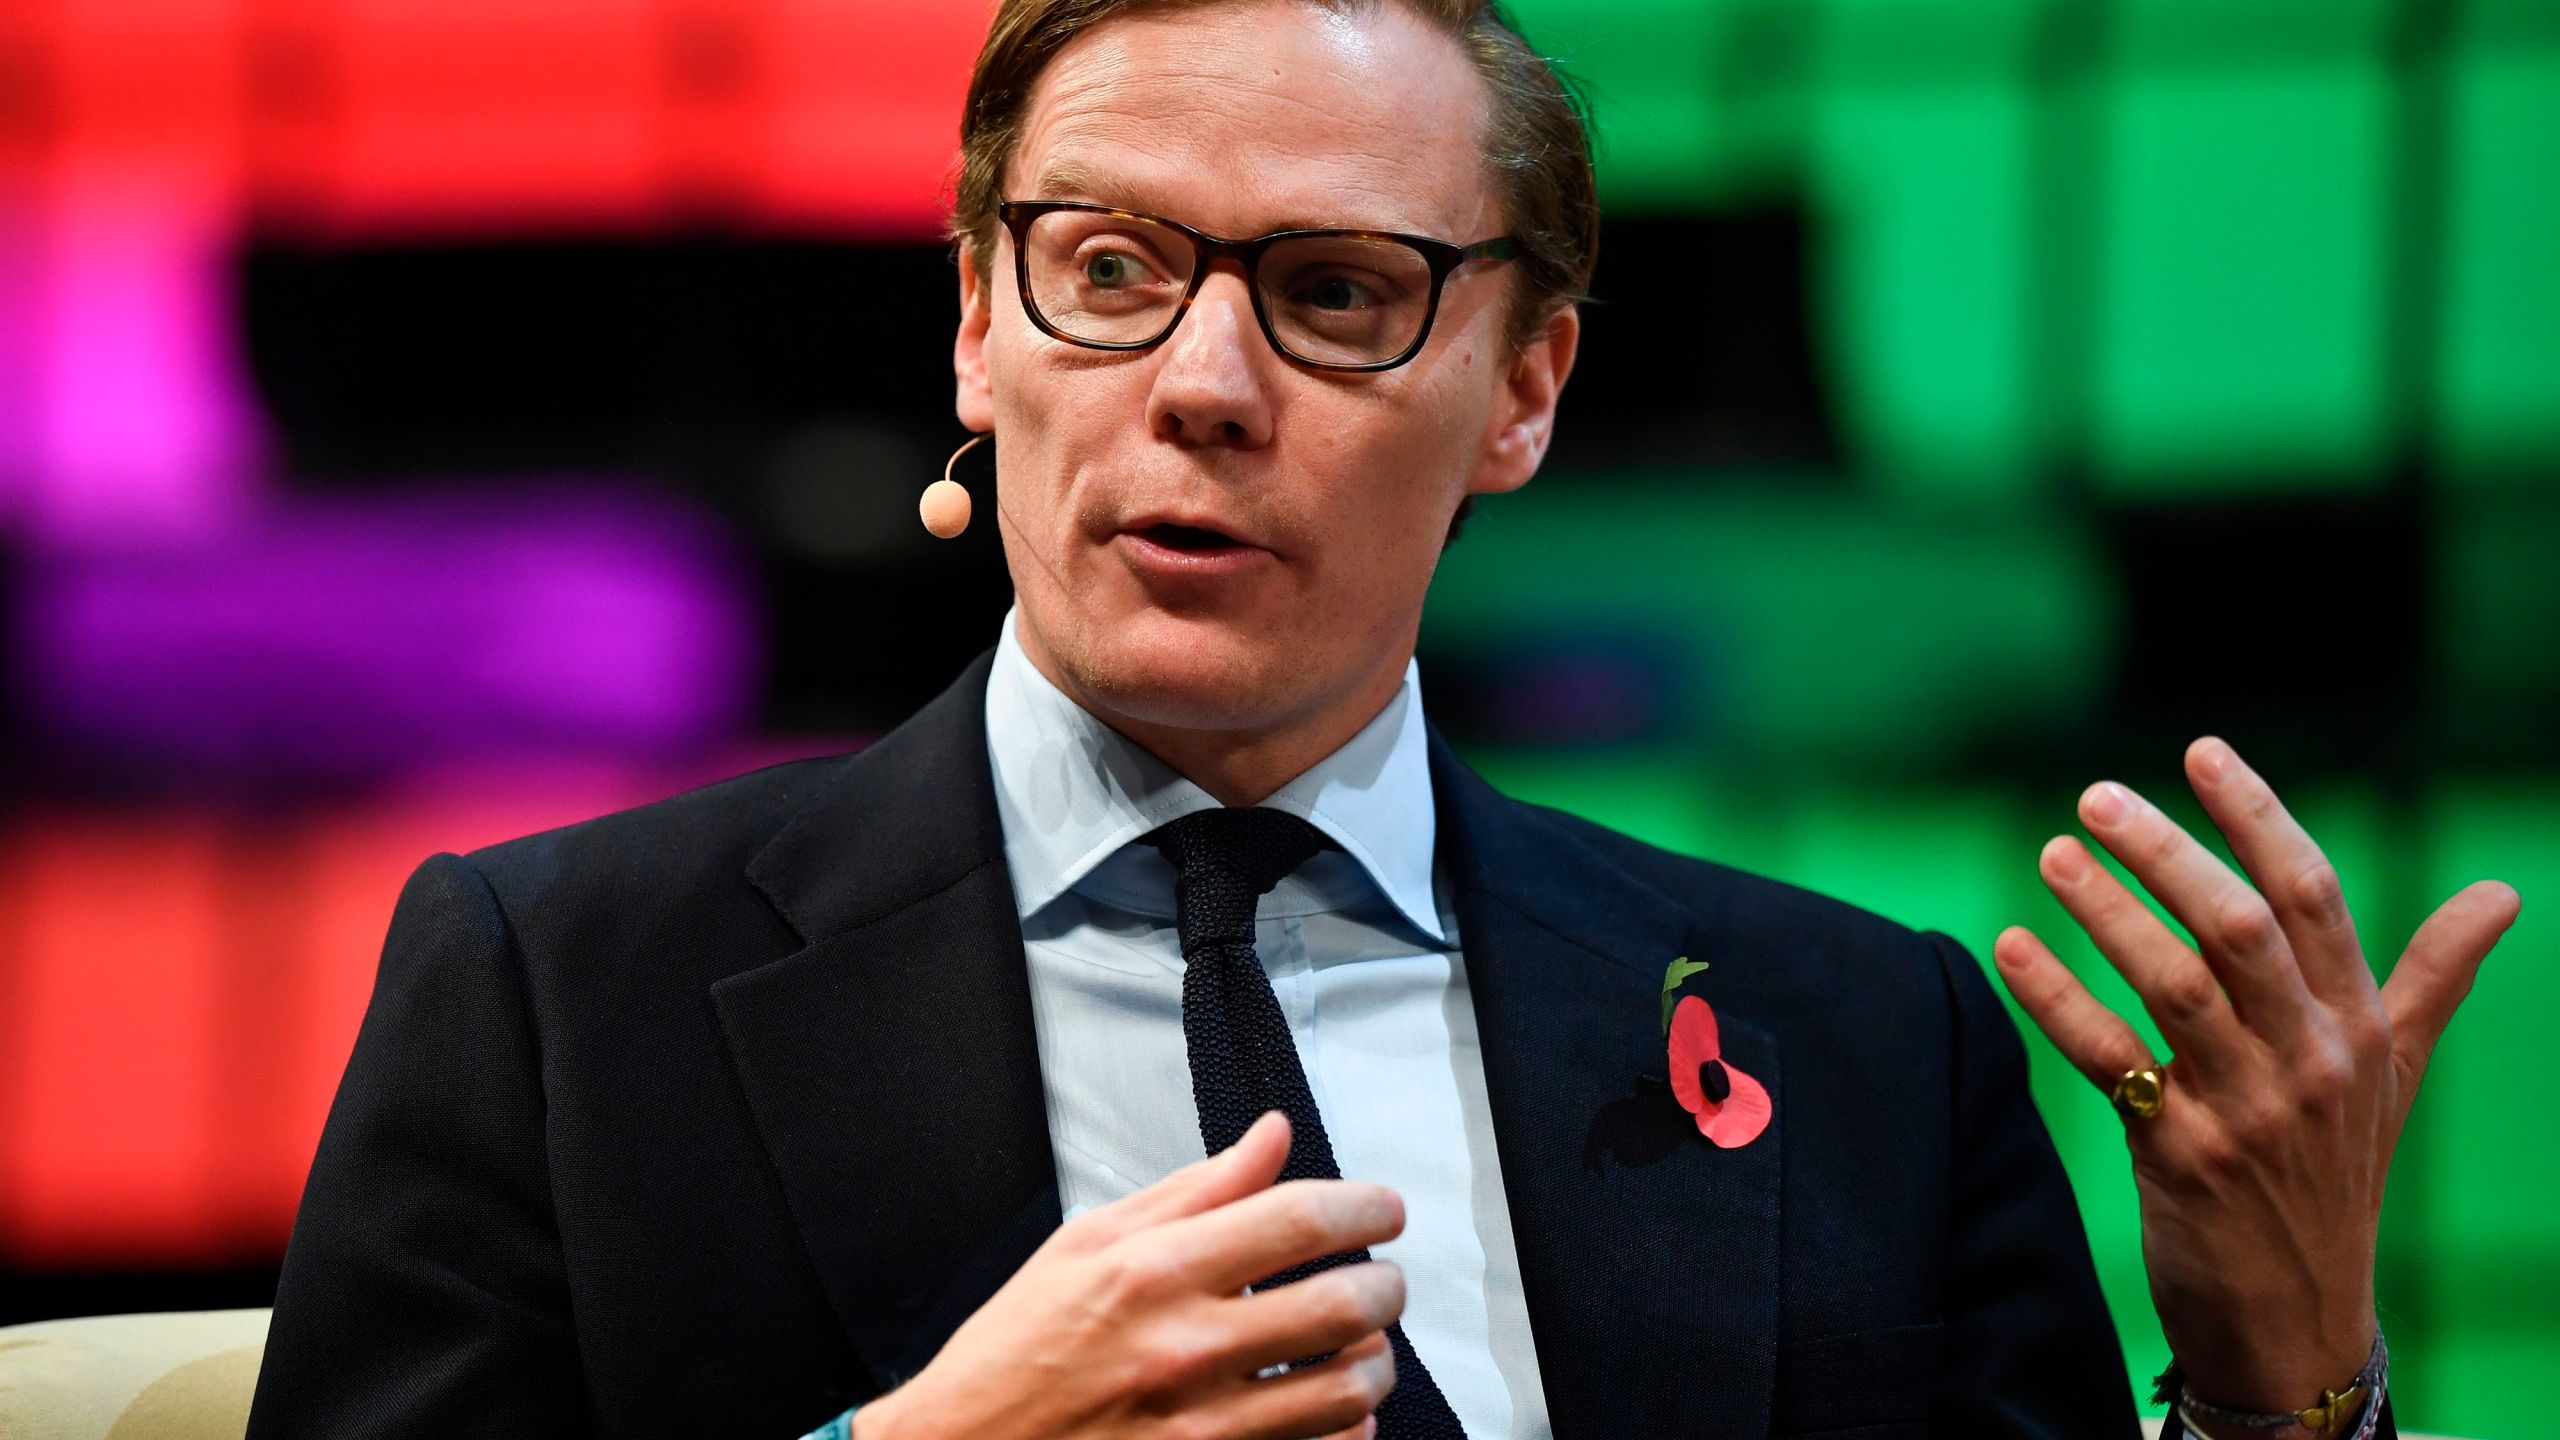 Cambridge Analytica CEO Alexander Nix gives an interview during the 2017 Web Summit in Lisbon, Nov. 9, 2017. (Credit: Patricia De Melo Moreira / AFP / Getty Images)